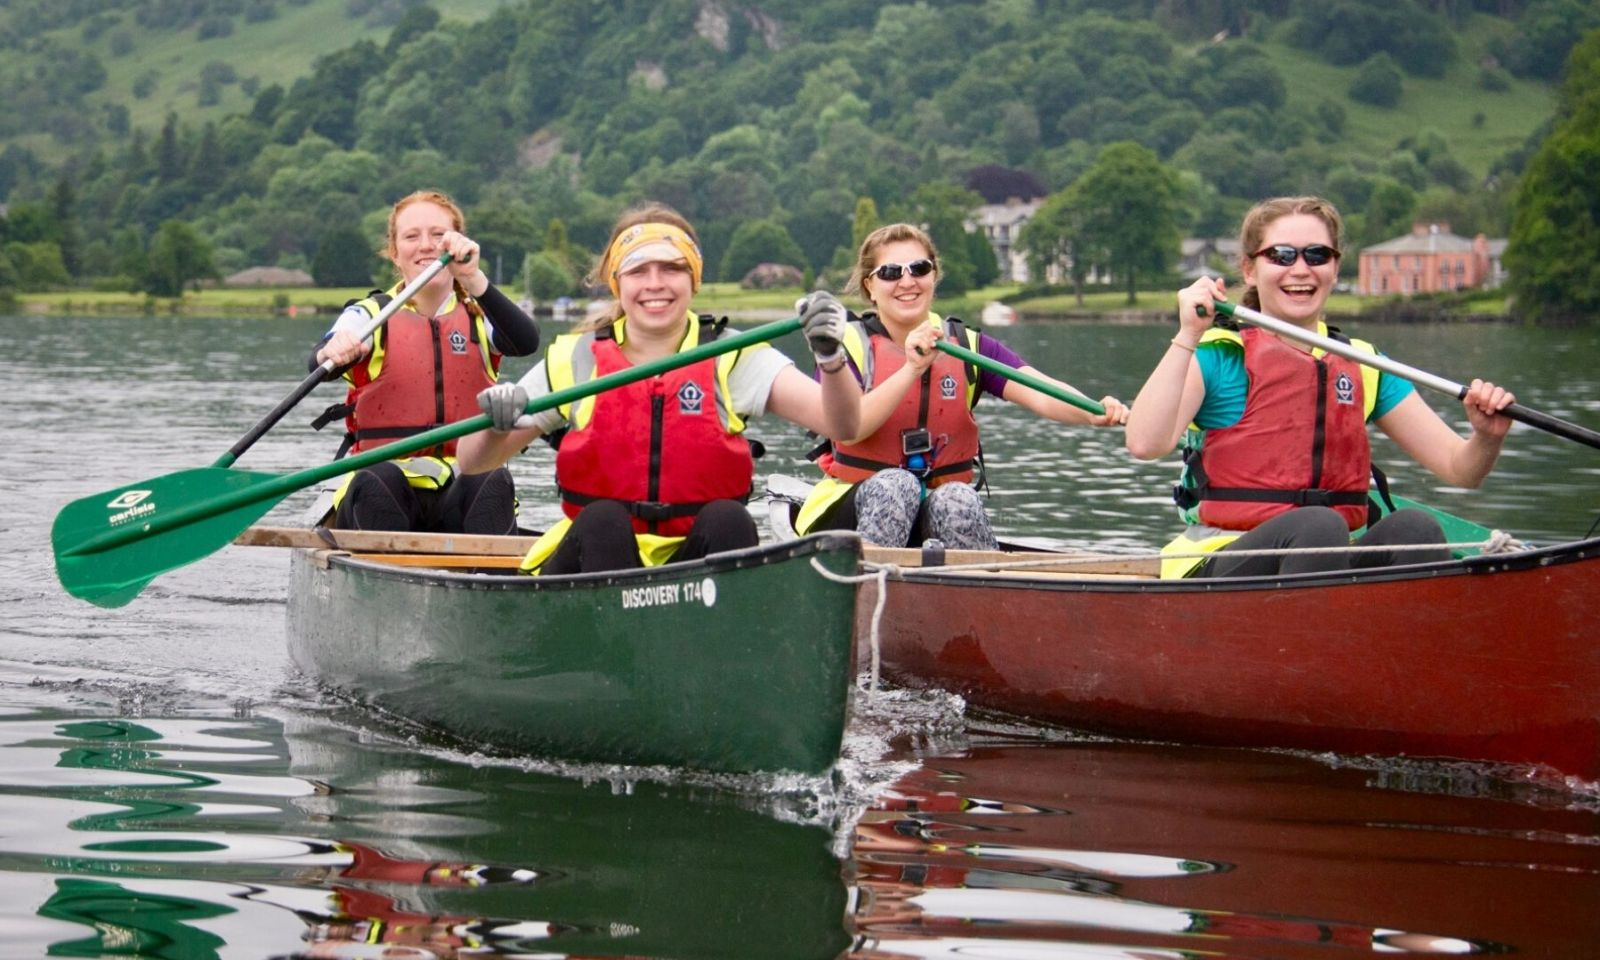 4 people in canoes smiling and having fun on the lake.